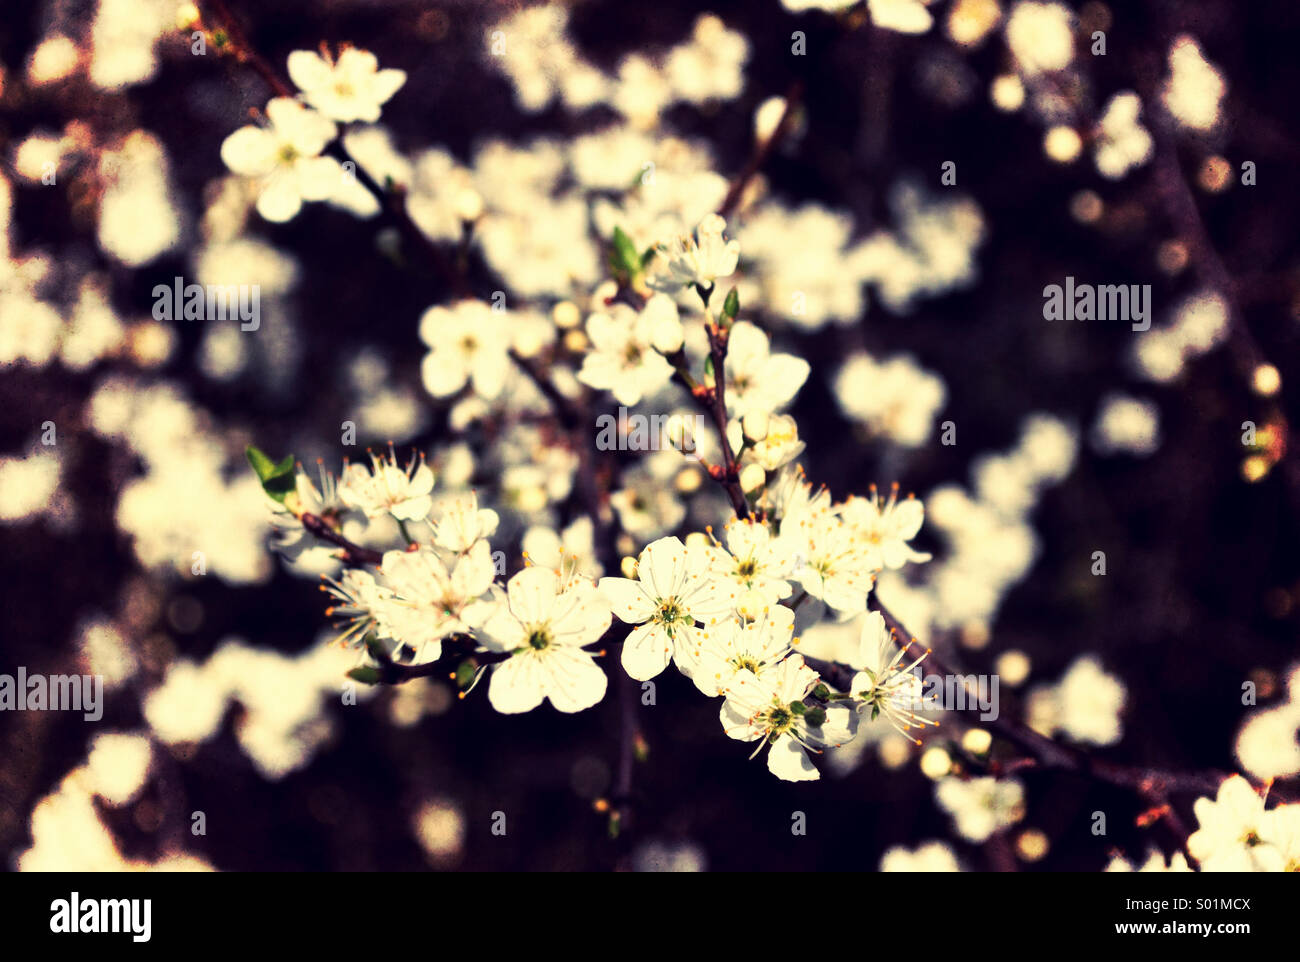 Blackthorn blossom, early spring. - Stock Image